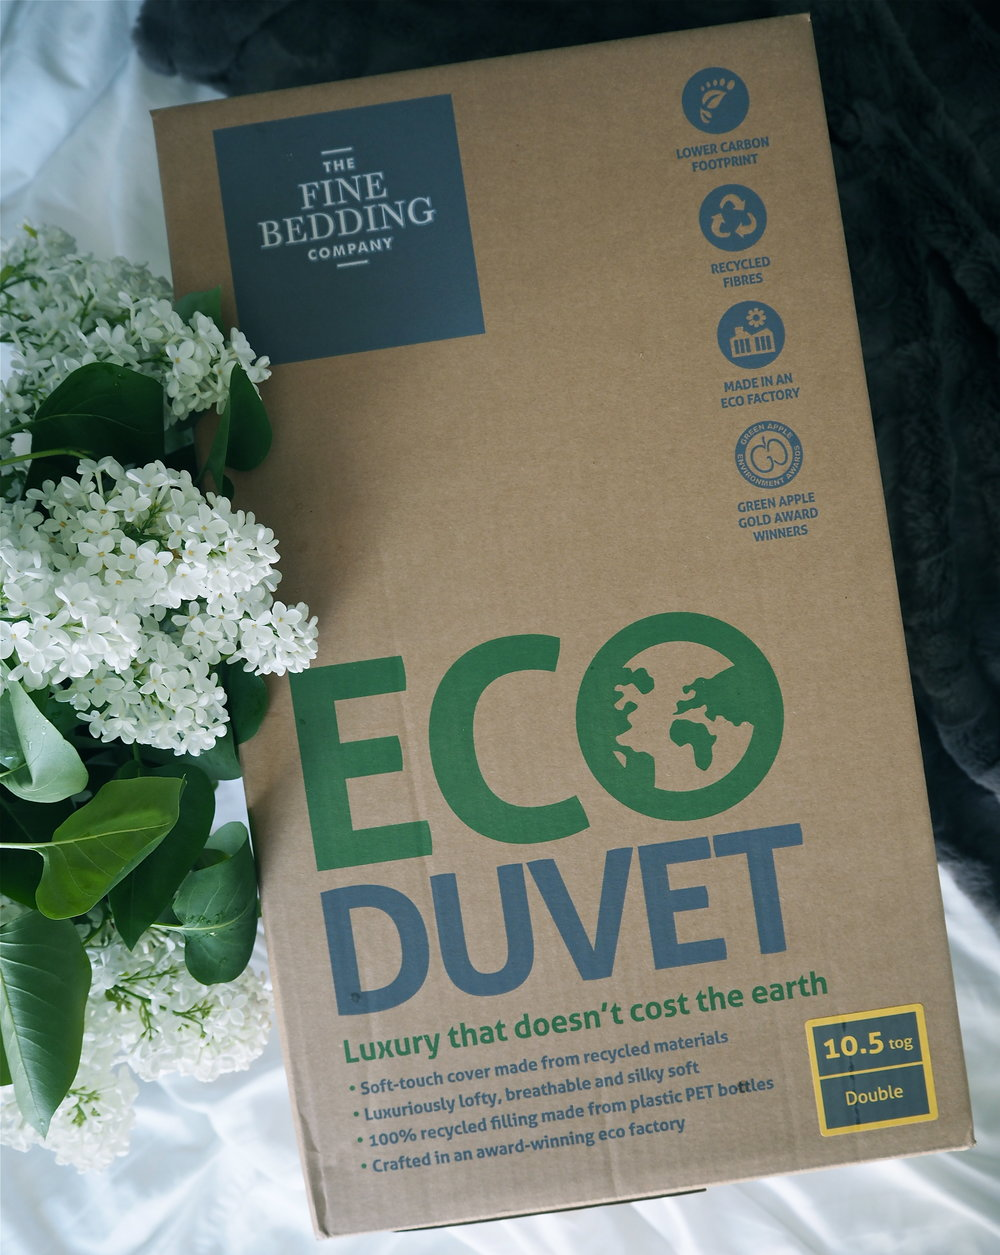 Eco Duvet By The Fine Bedding Company